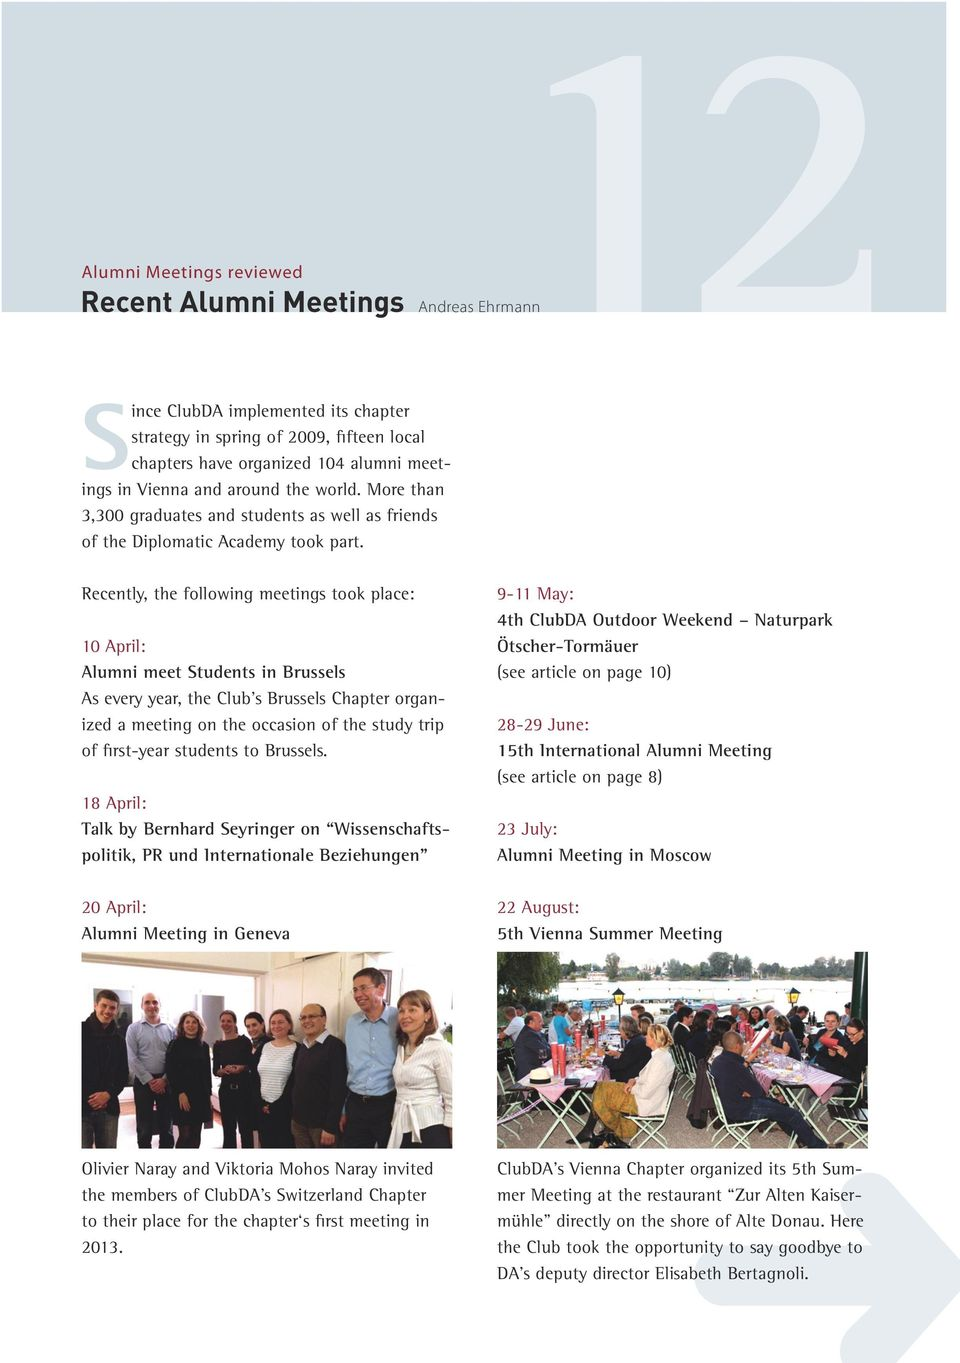 Recently, the following meetings took place: 10 April: Alumni meet Students in Brussels As every year, the Club s Brussels Chapter organized a meeting on the occasion of the study trip of first-year